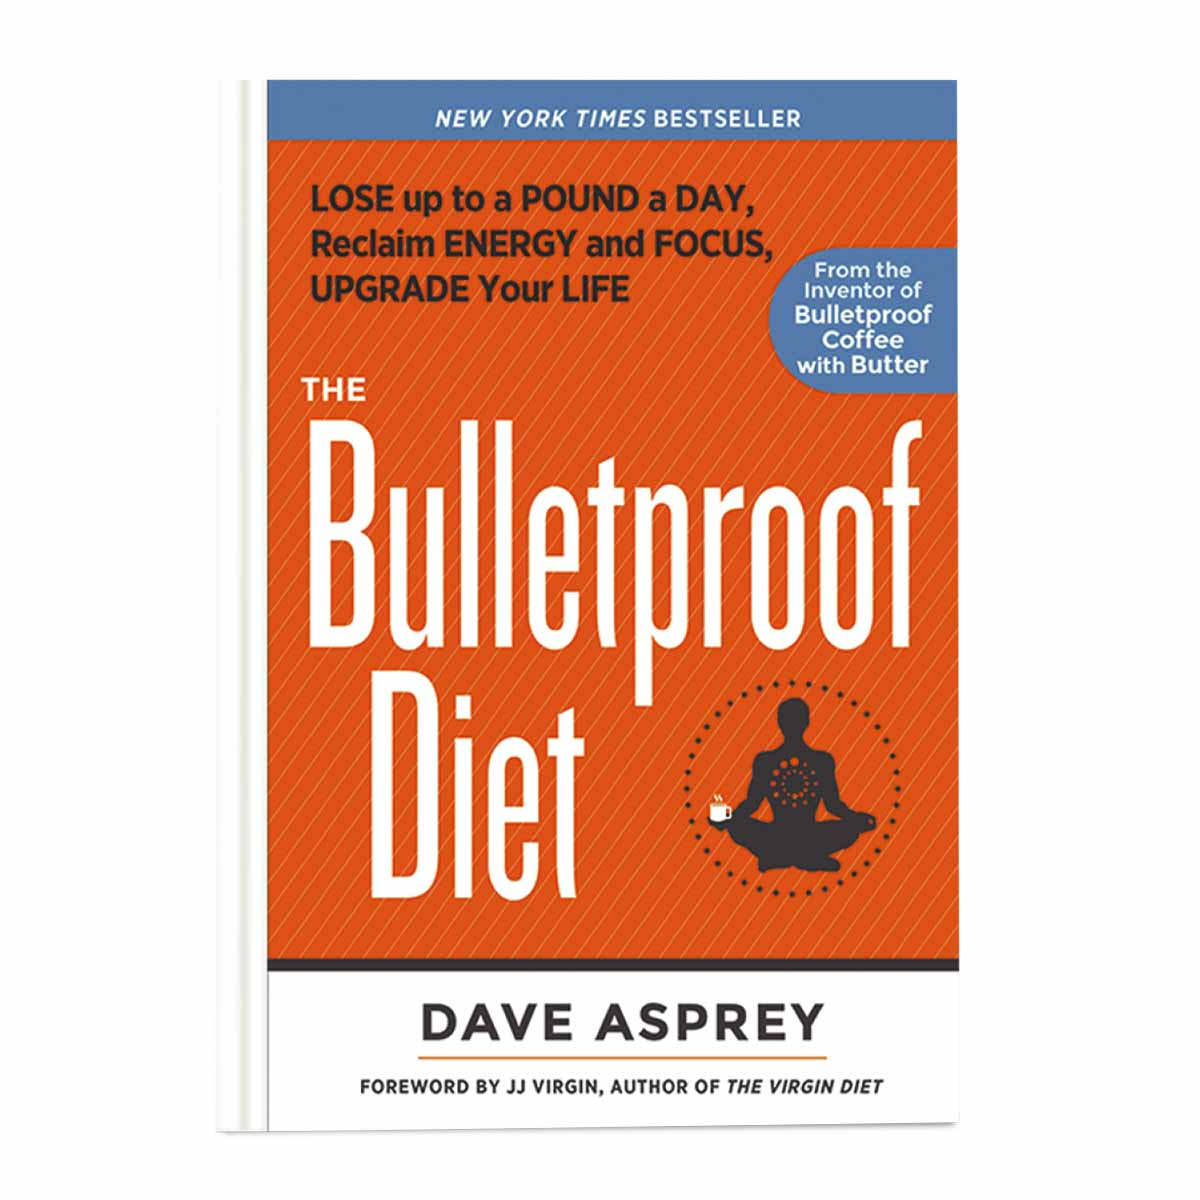 The Bulletproof Diet Book (Hardcover)